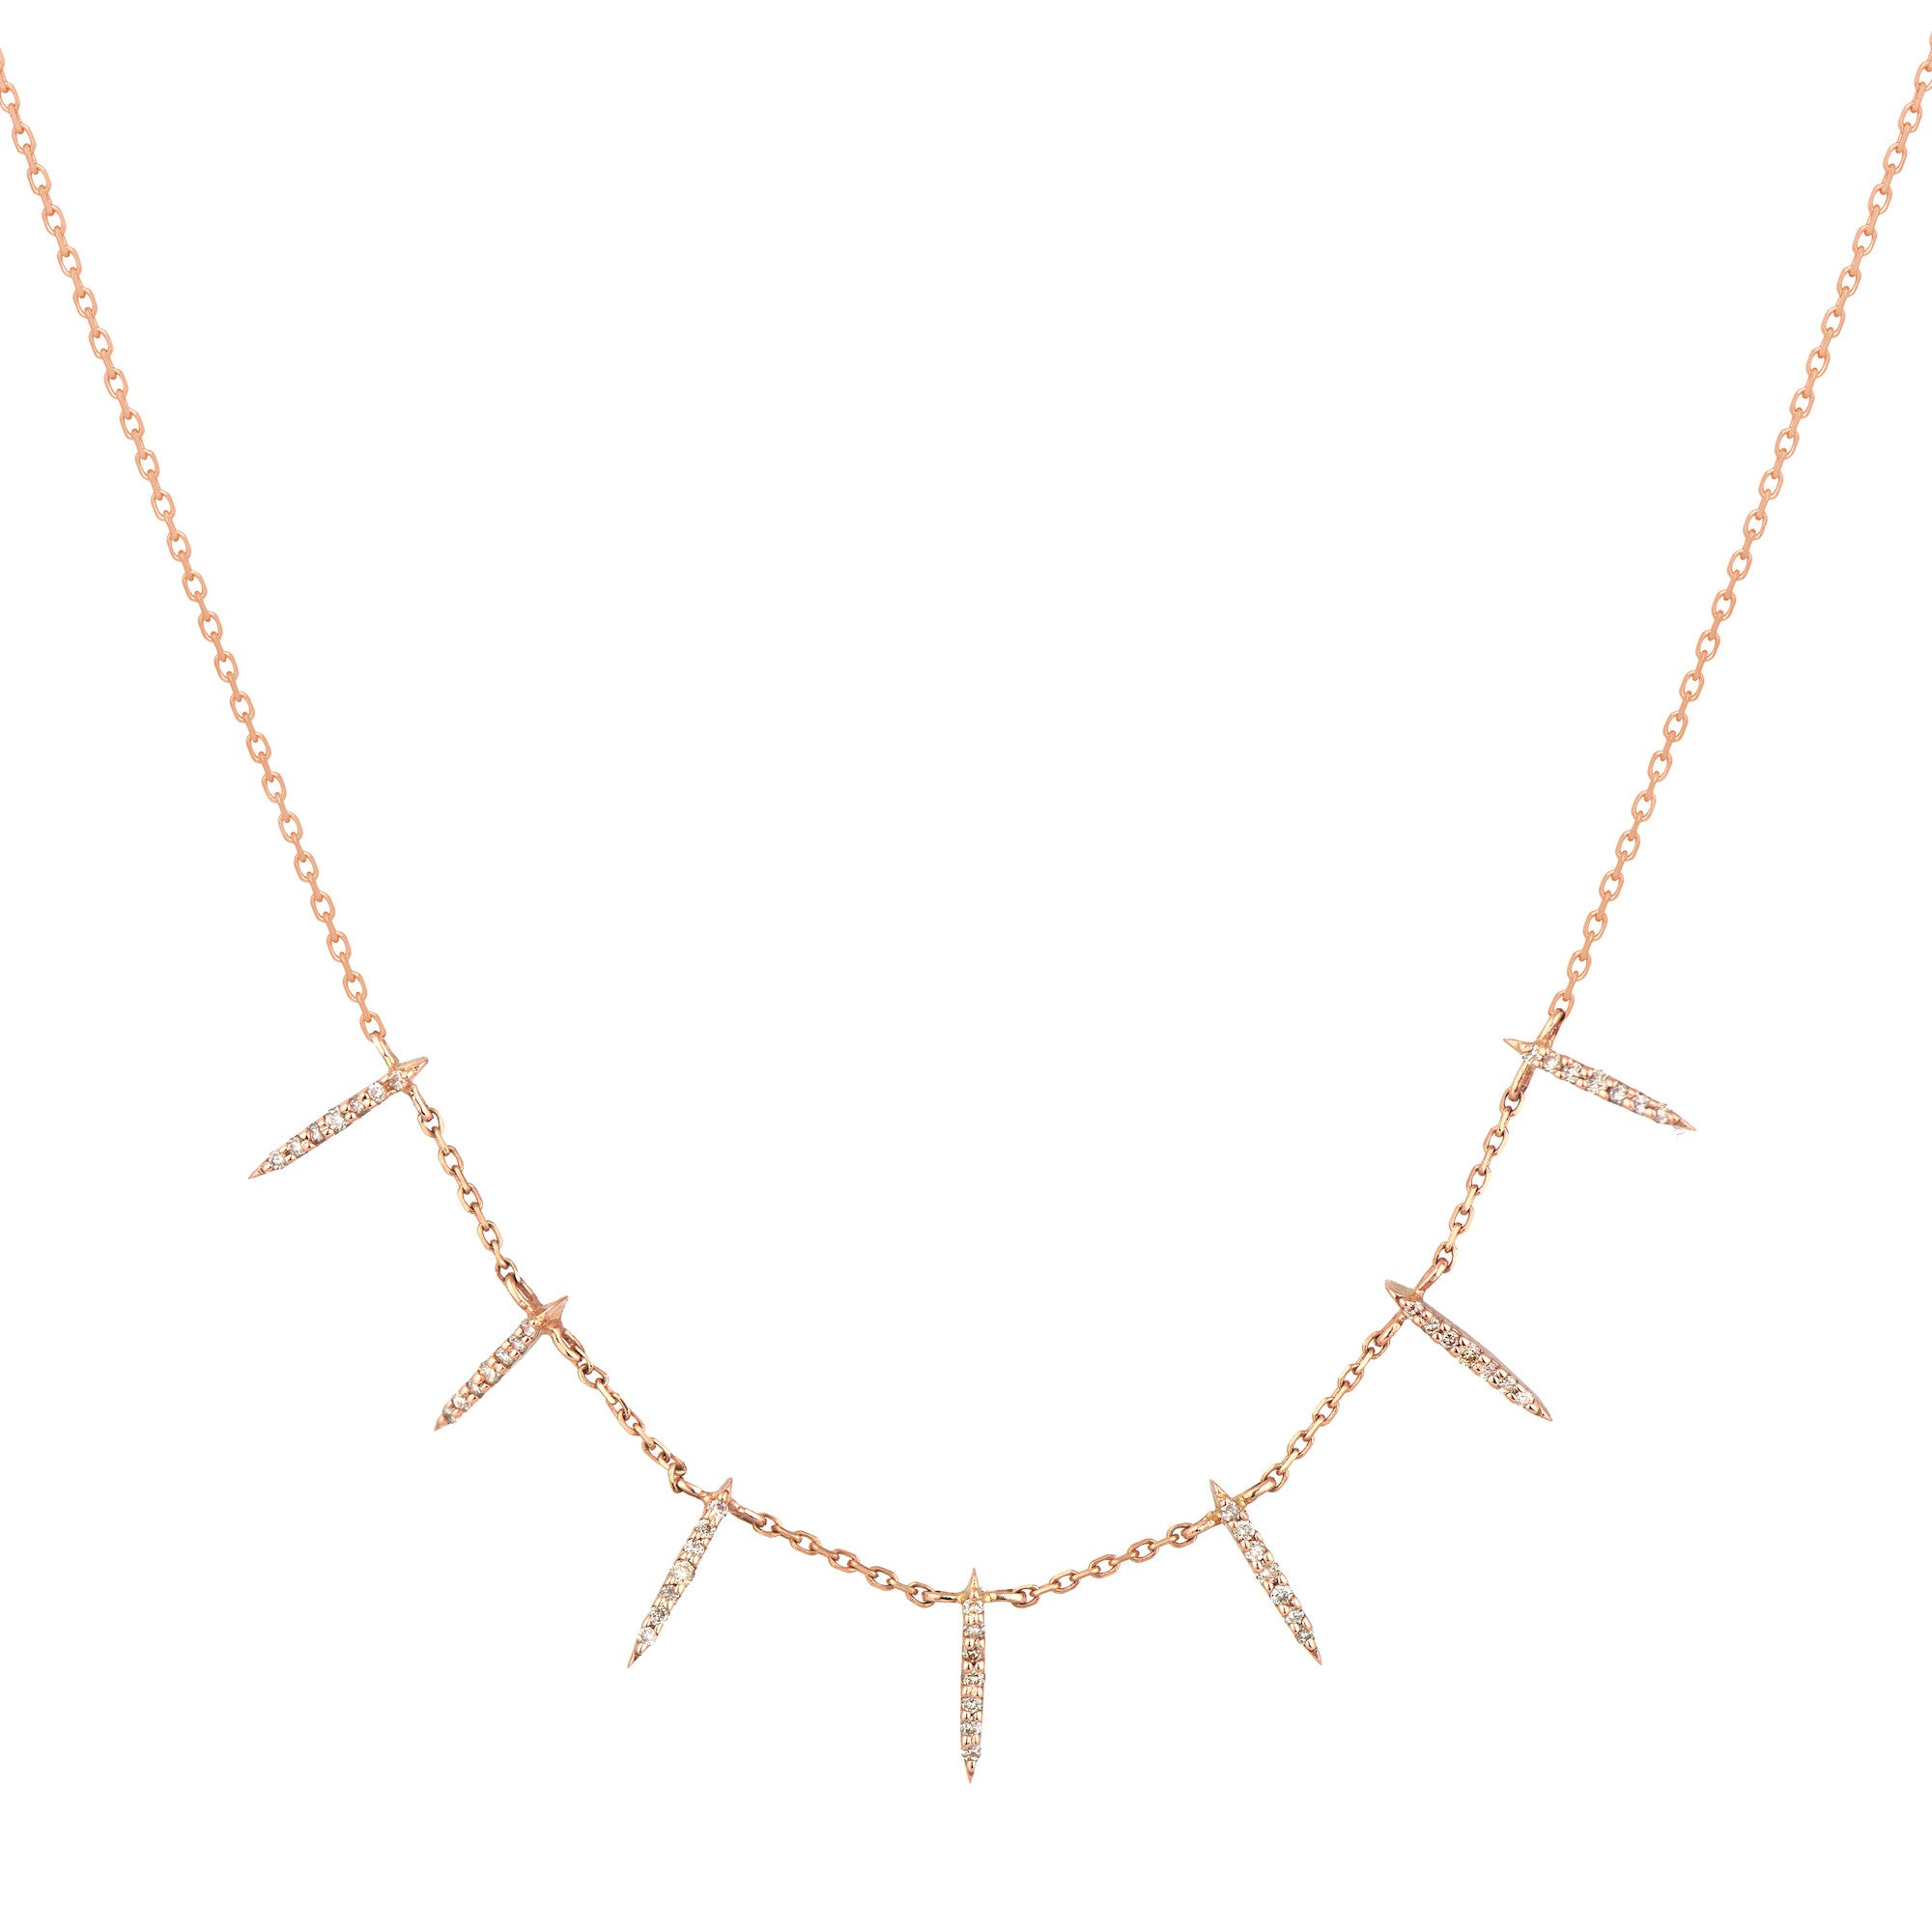 Seven Sunbeams Diamon Necklace, 14k Gold